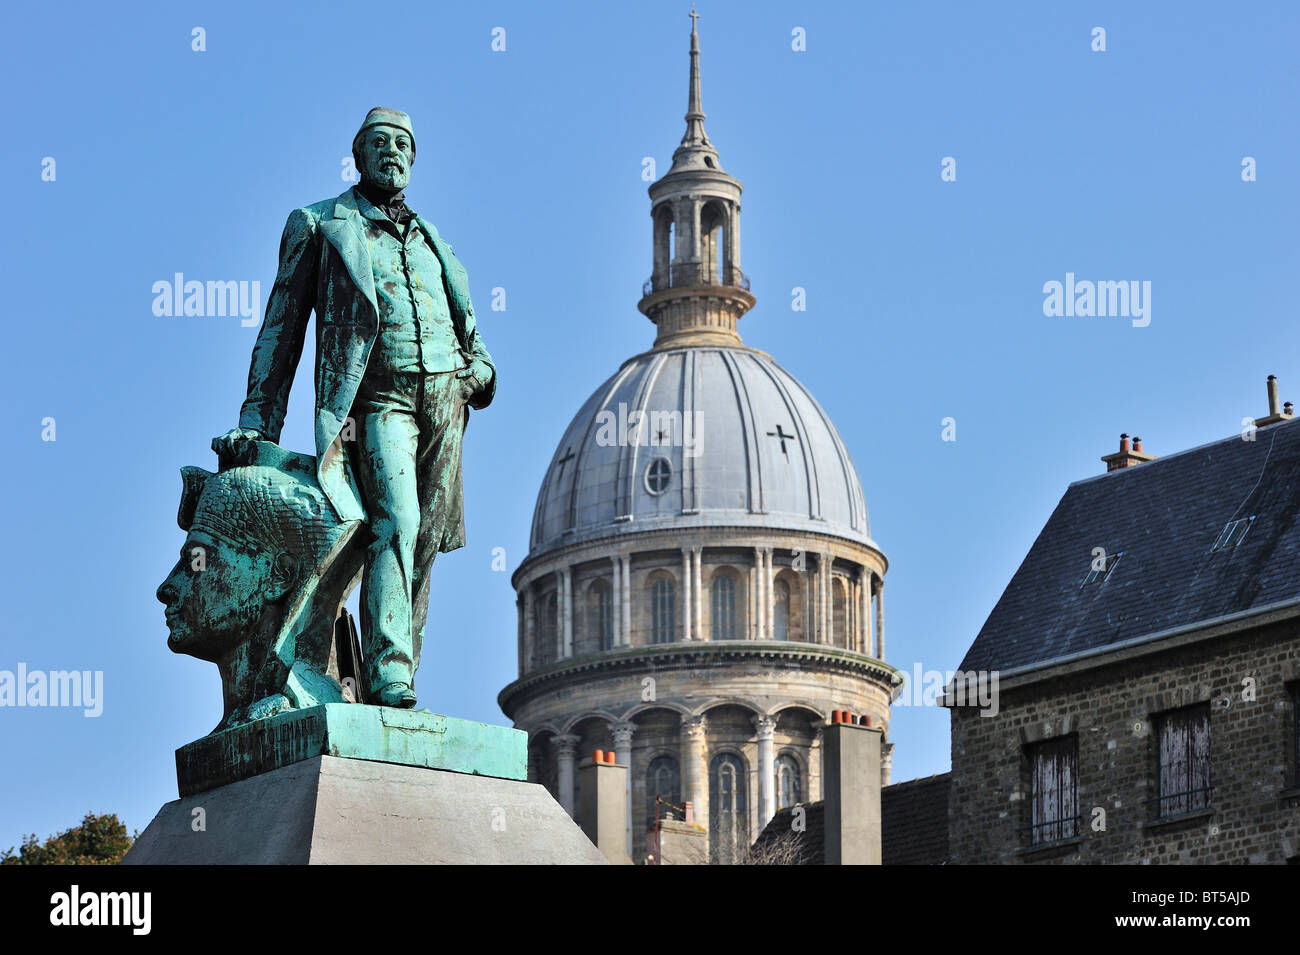 Statue of Auguste Mariette, archaeologist, Egyptologist and founder of the Egyptian Museum in Cairo, Boulogne-sur - Stock Image